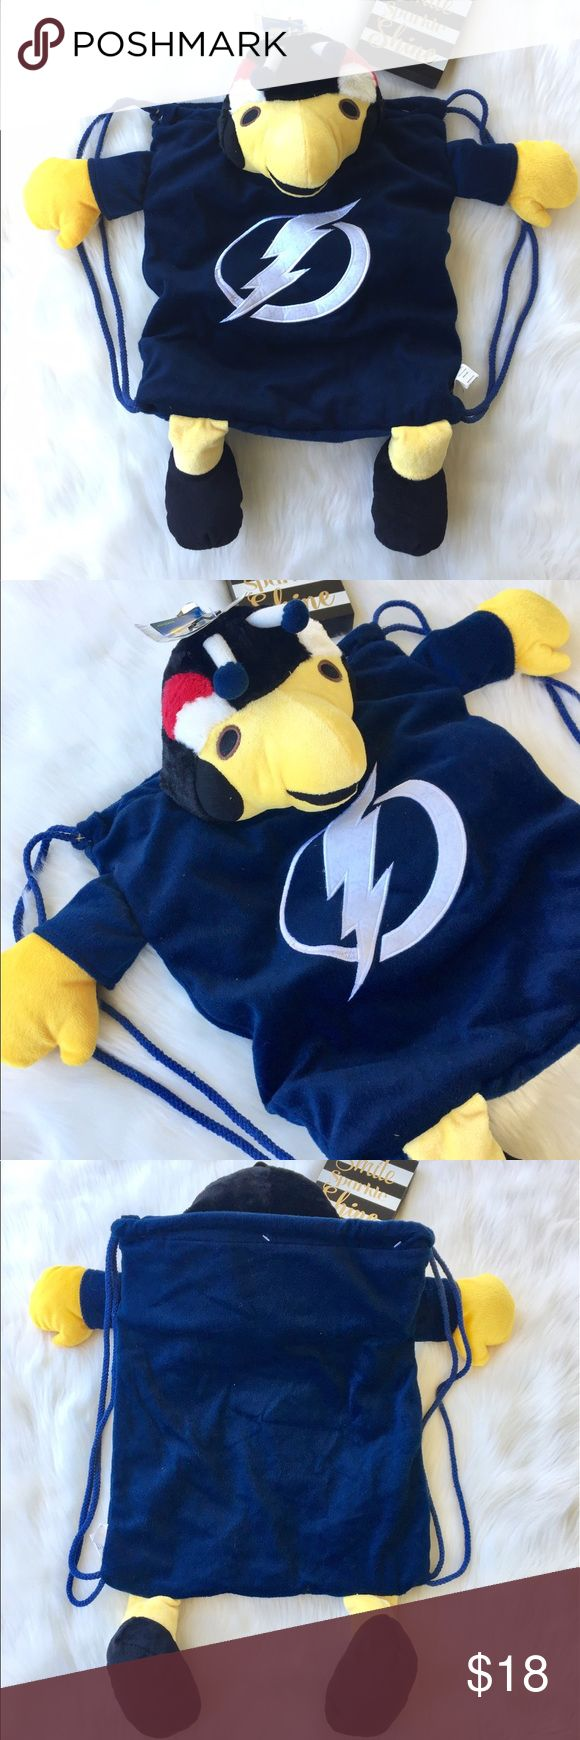 NWT NHL Tampa Bay Lightning Backpack NWT NHL Tampa Bay Lightning Backpack This is a cute fun and versatile backpack that is great for game day.  One size, new with tags that has a ton of room!                                   🤔 Please ask all questions ✅Use Offer Button 🚭& 🐶😺🐠Free Home 🚫Trades/Offline Transactions 📦Bundle & Save Nike Accessories Bags